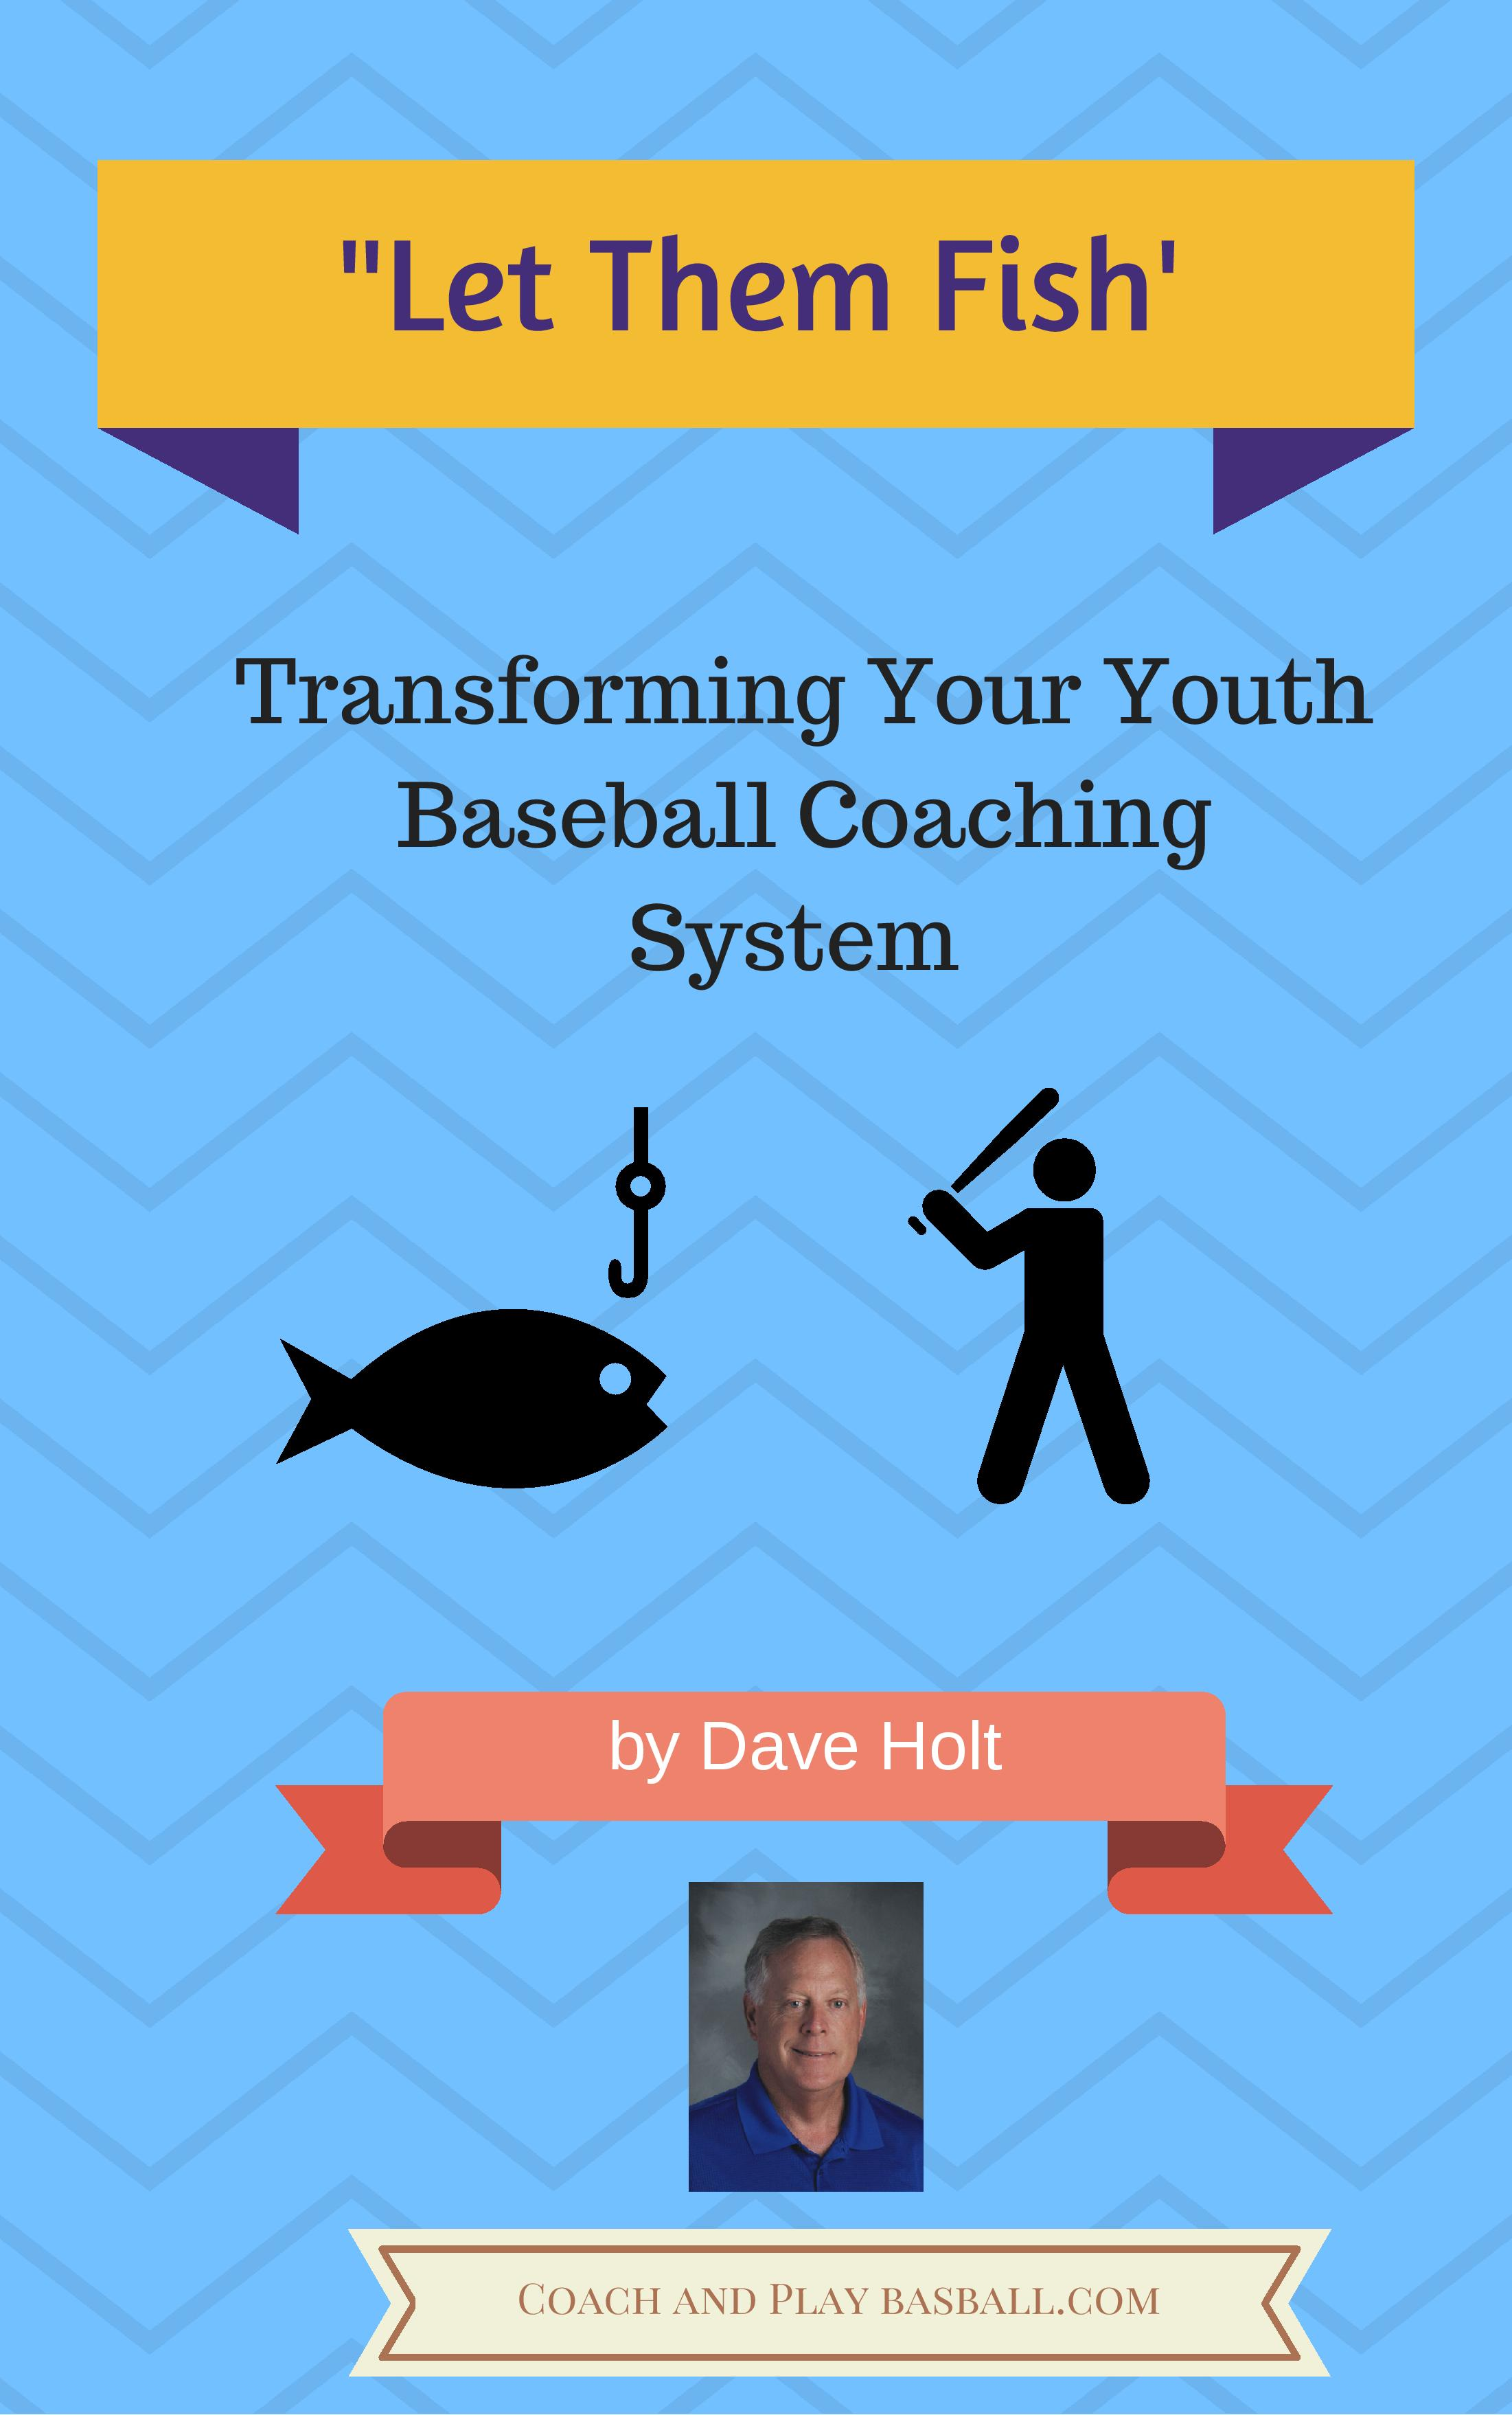 #2 'Let Them Fish' Transforming Your Baseball Coaching System